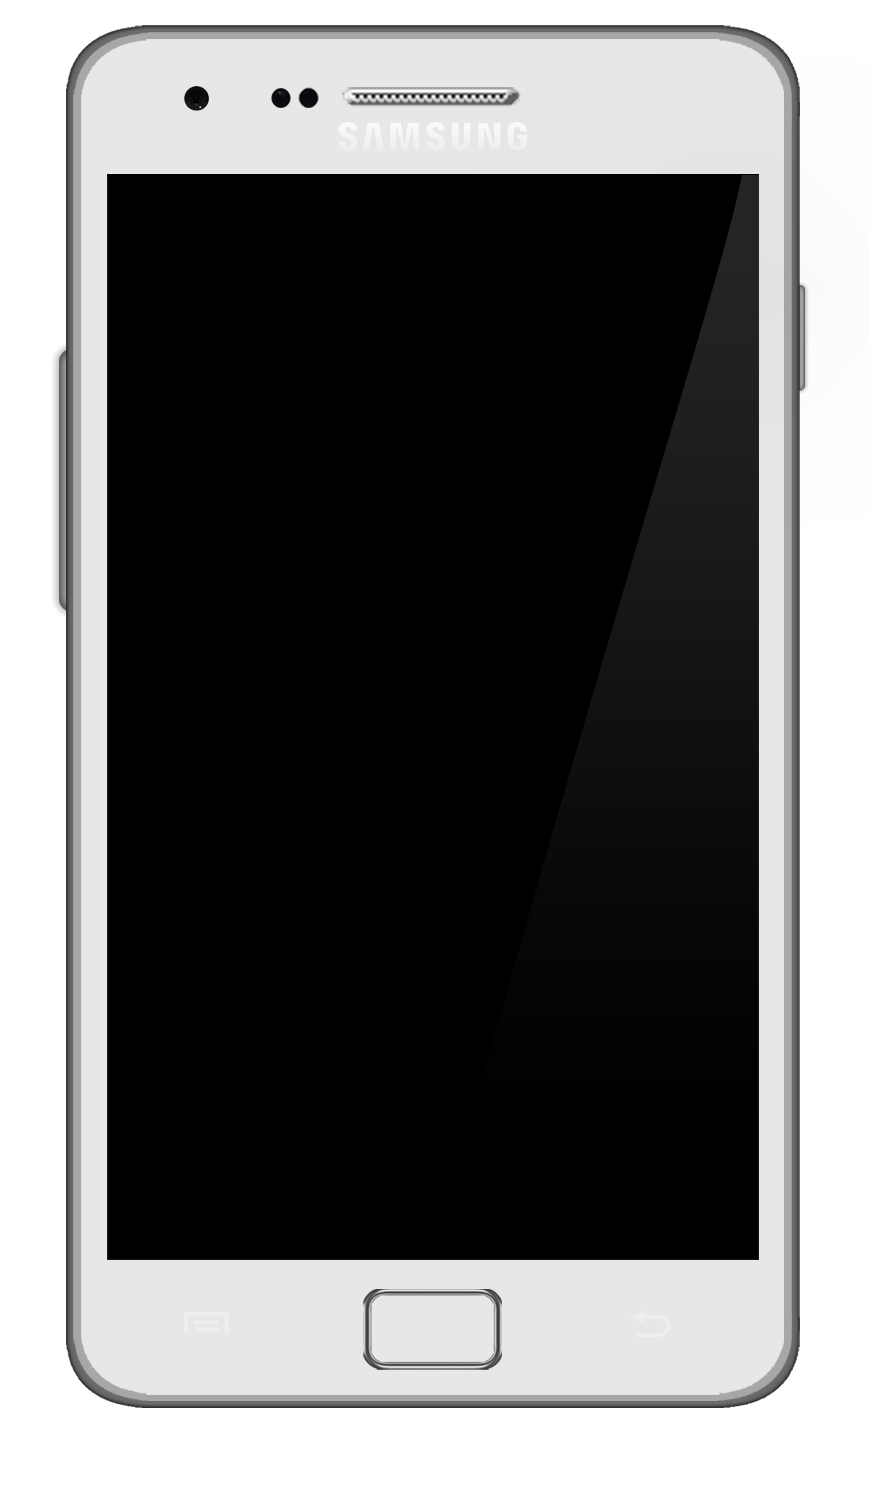 File:Samsung Galaxy S II.png.